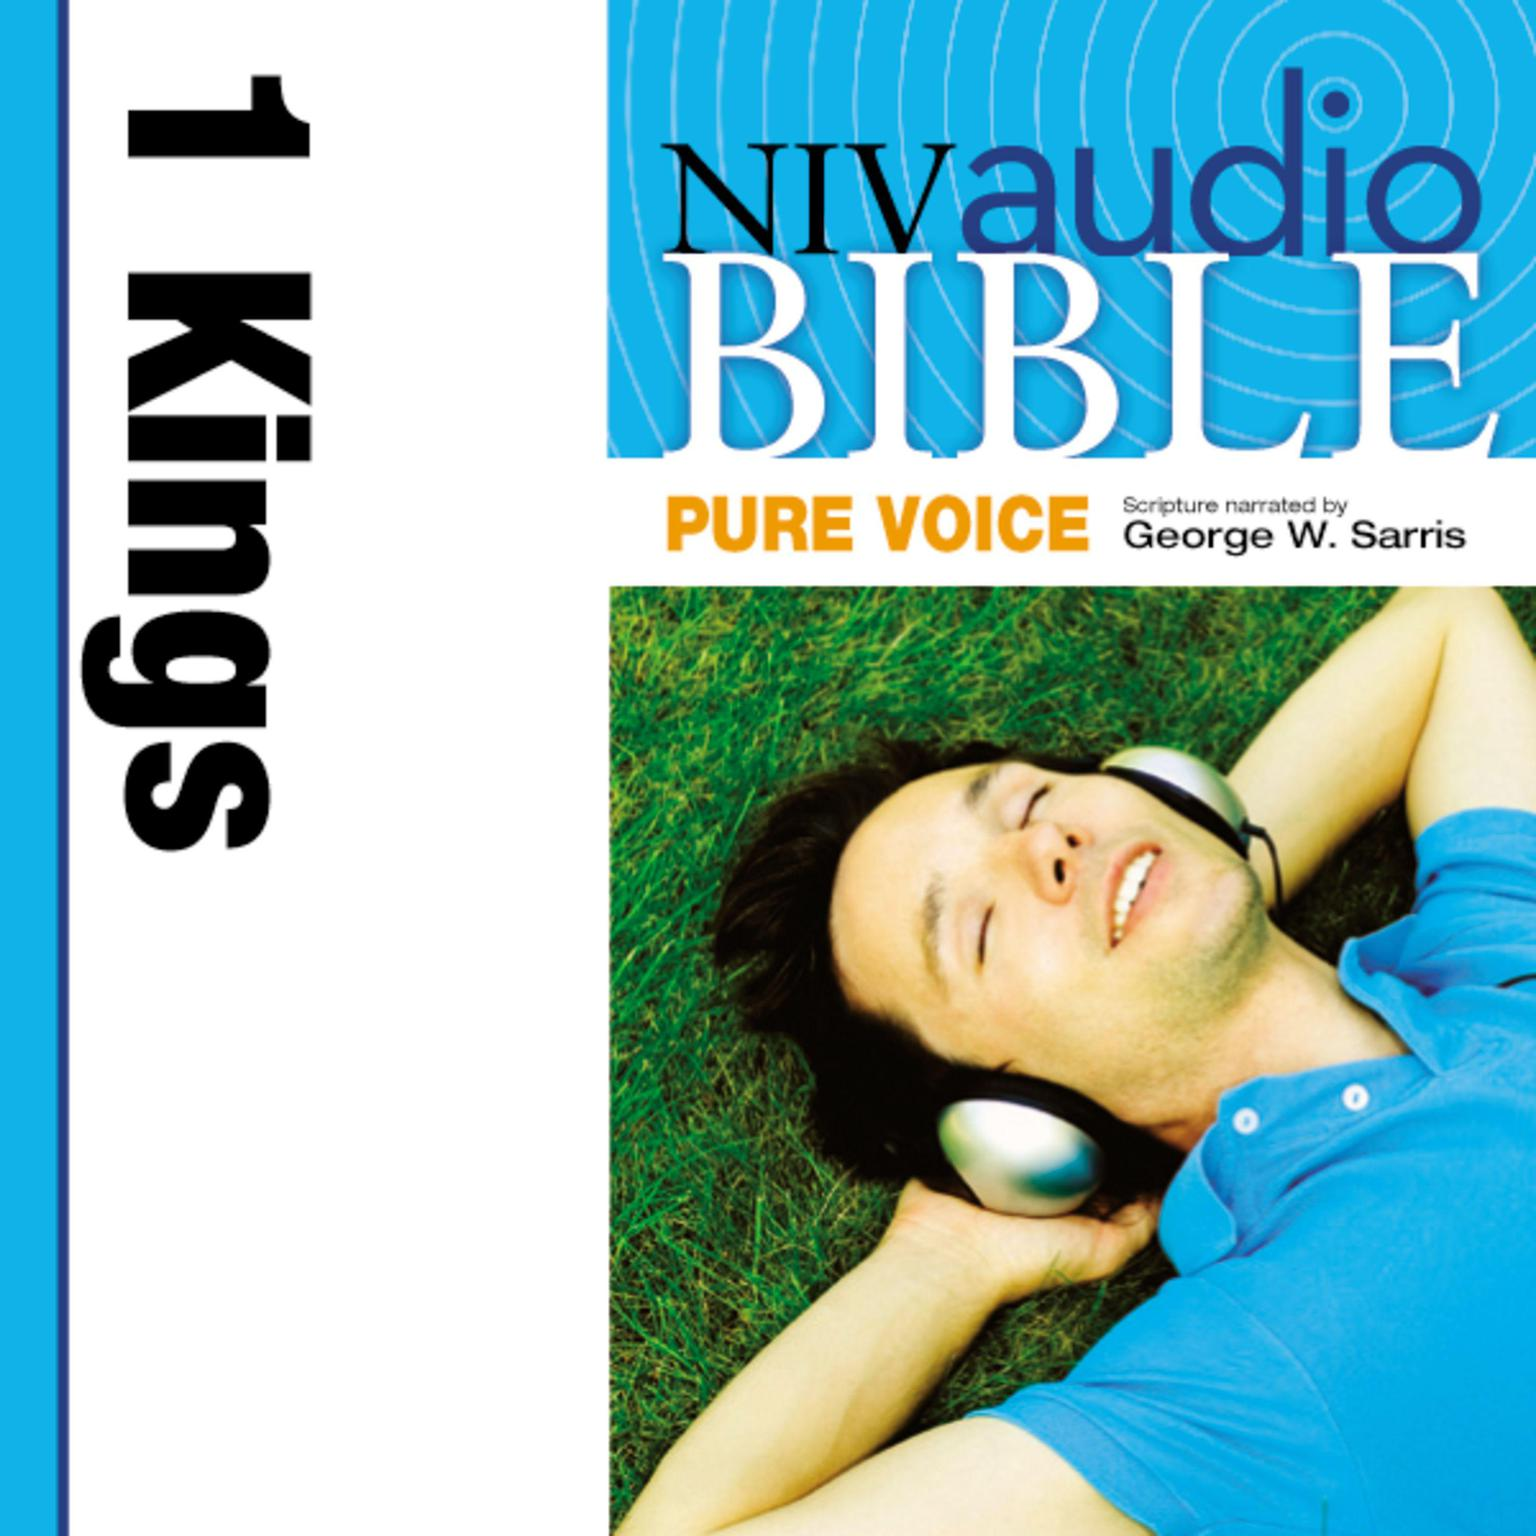 Printable NIV, Audio Bible, Pure Voice: 1 Kings, Audio Download (Narrated by George W. Sarris) Audiobook Cover Art